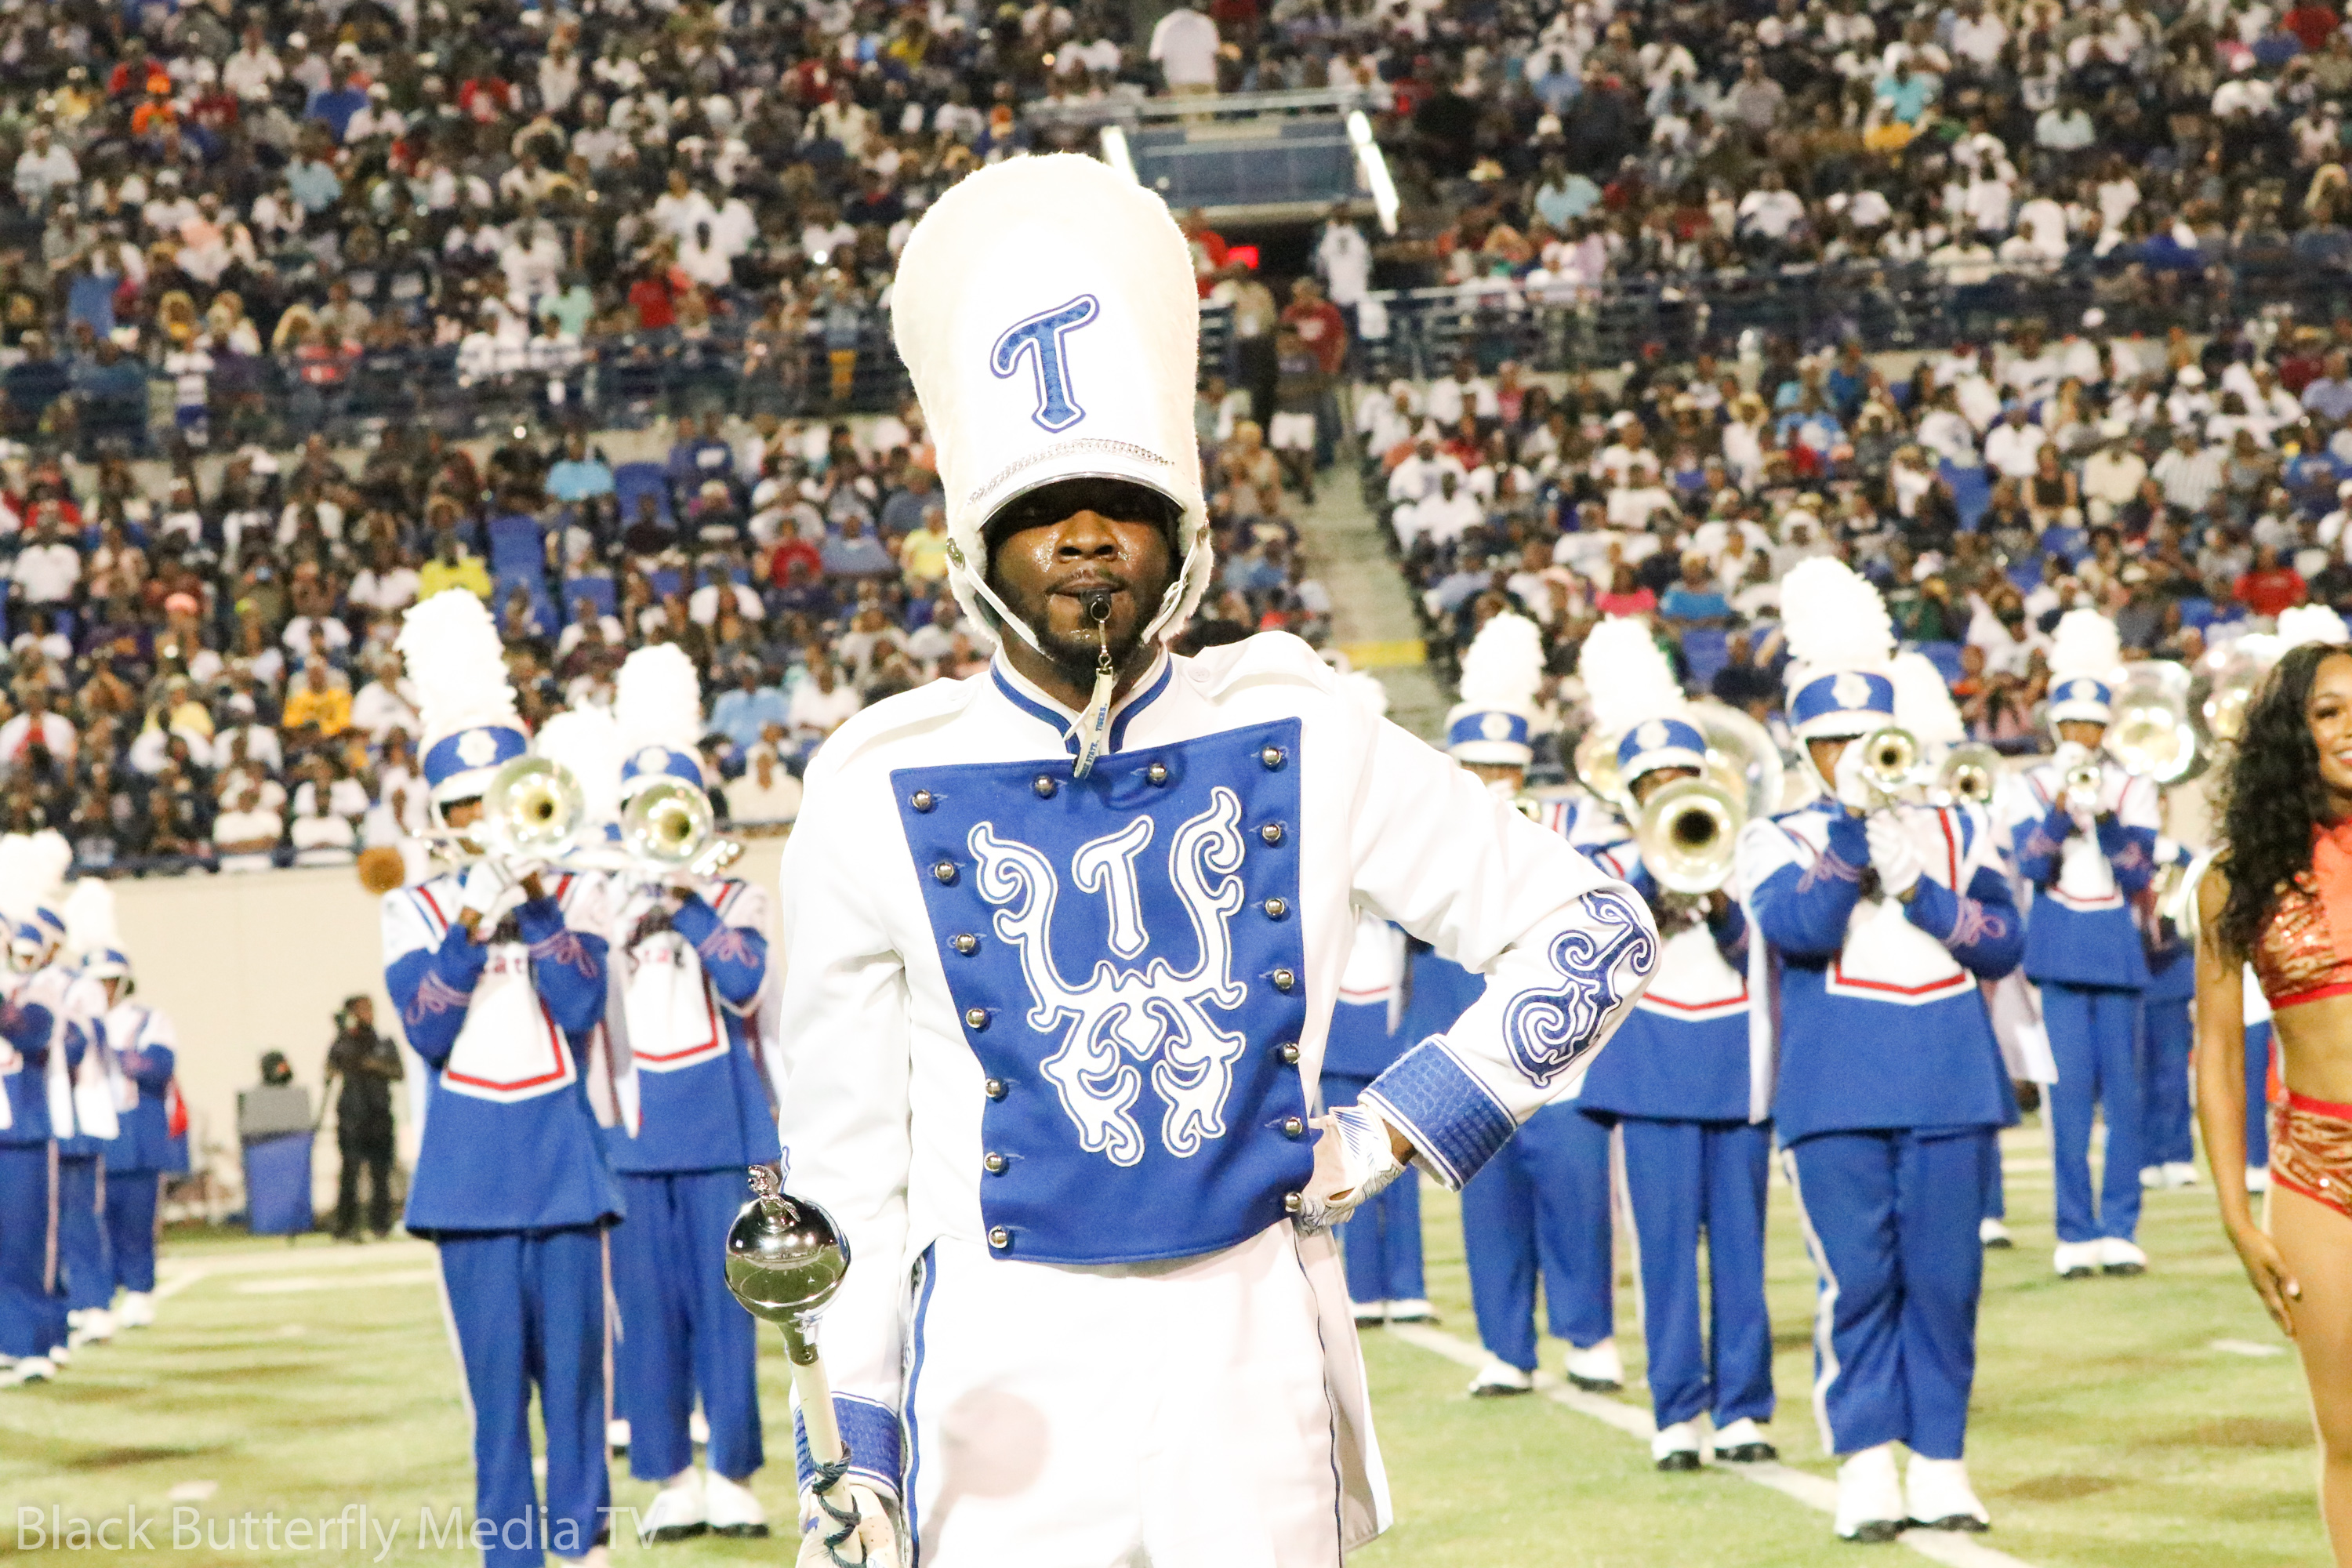 TSU Marching Band at 30th Southern Heritage Classic